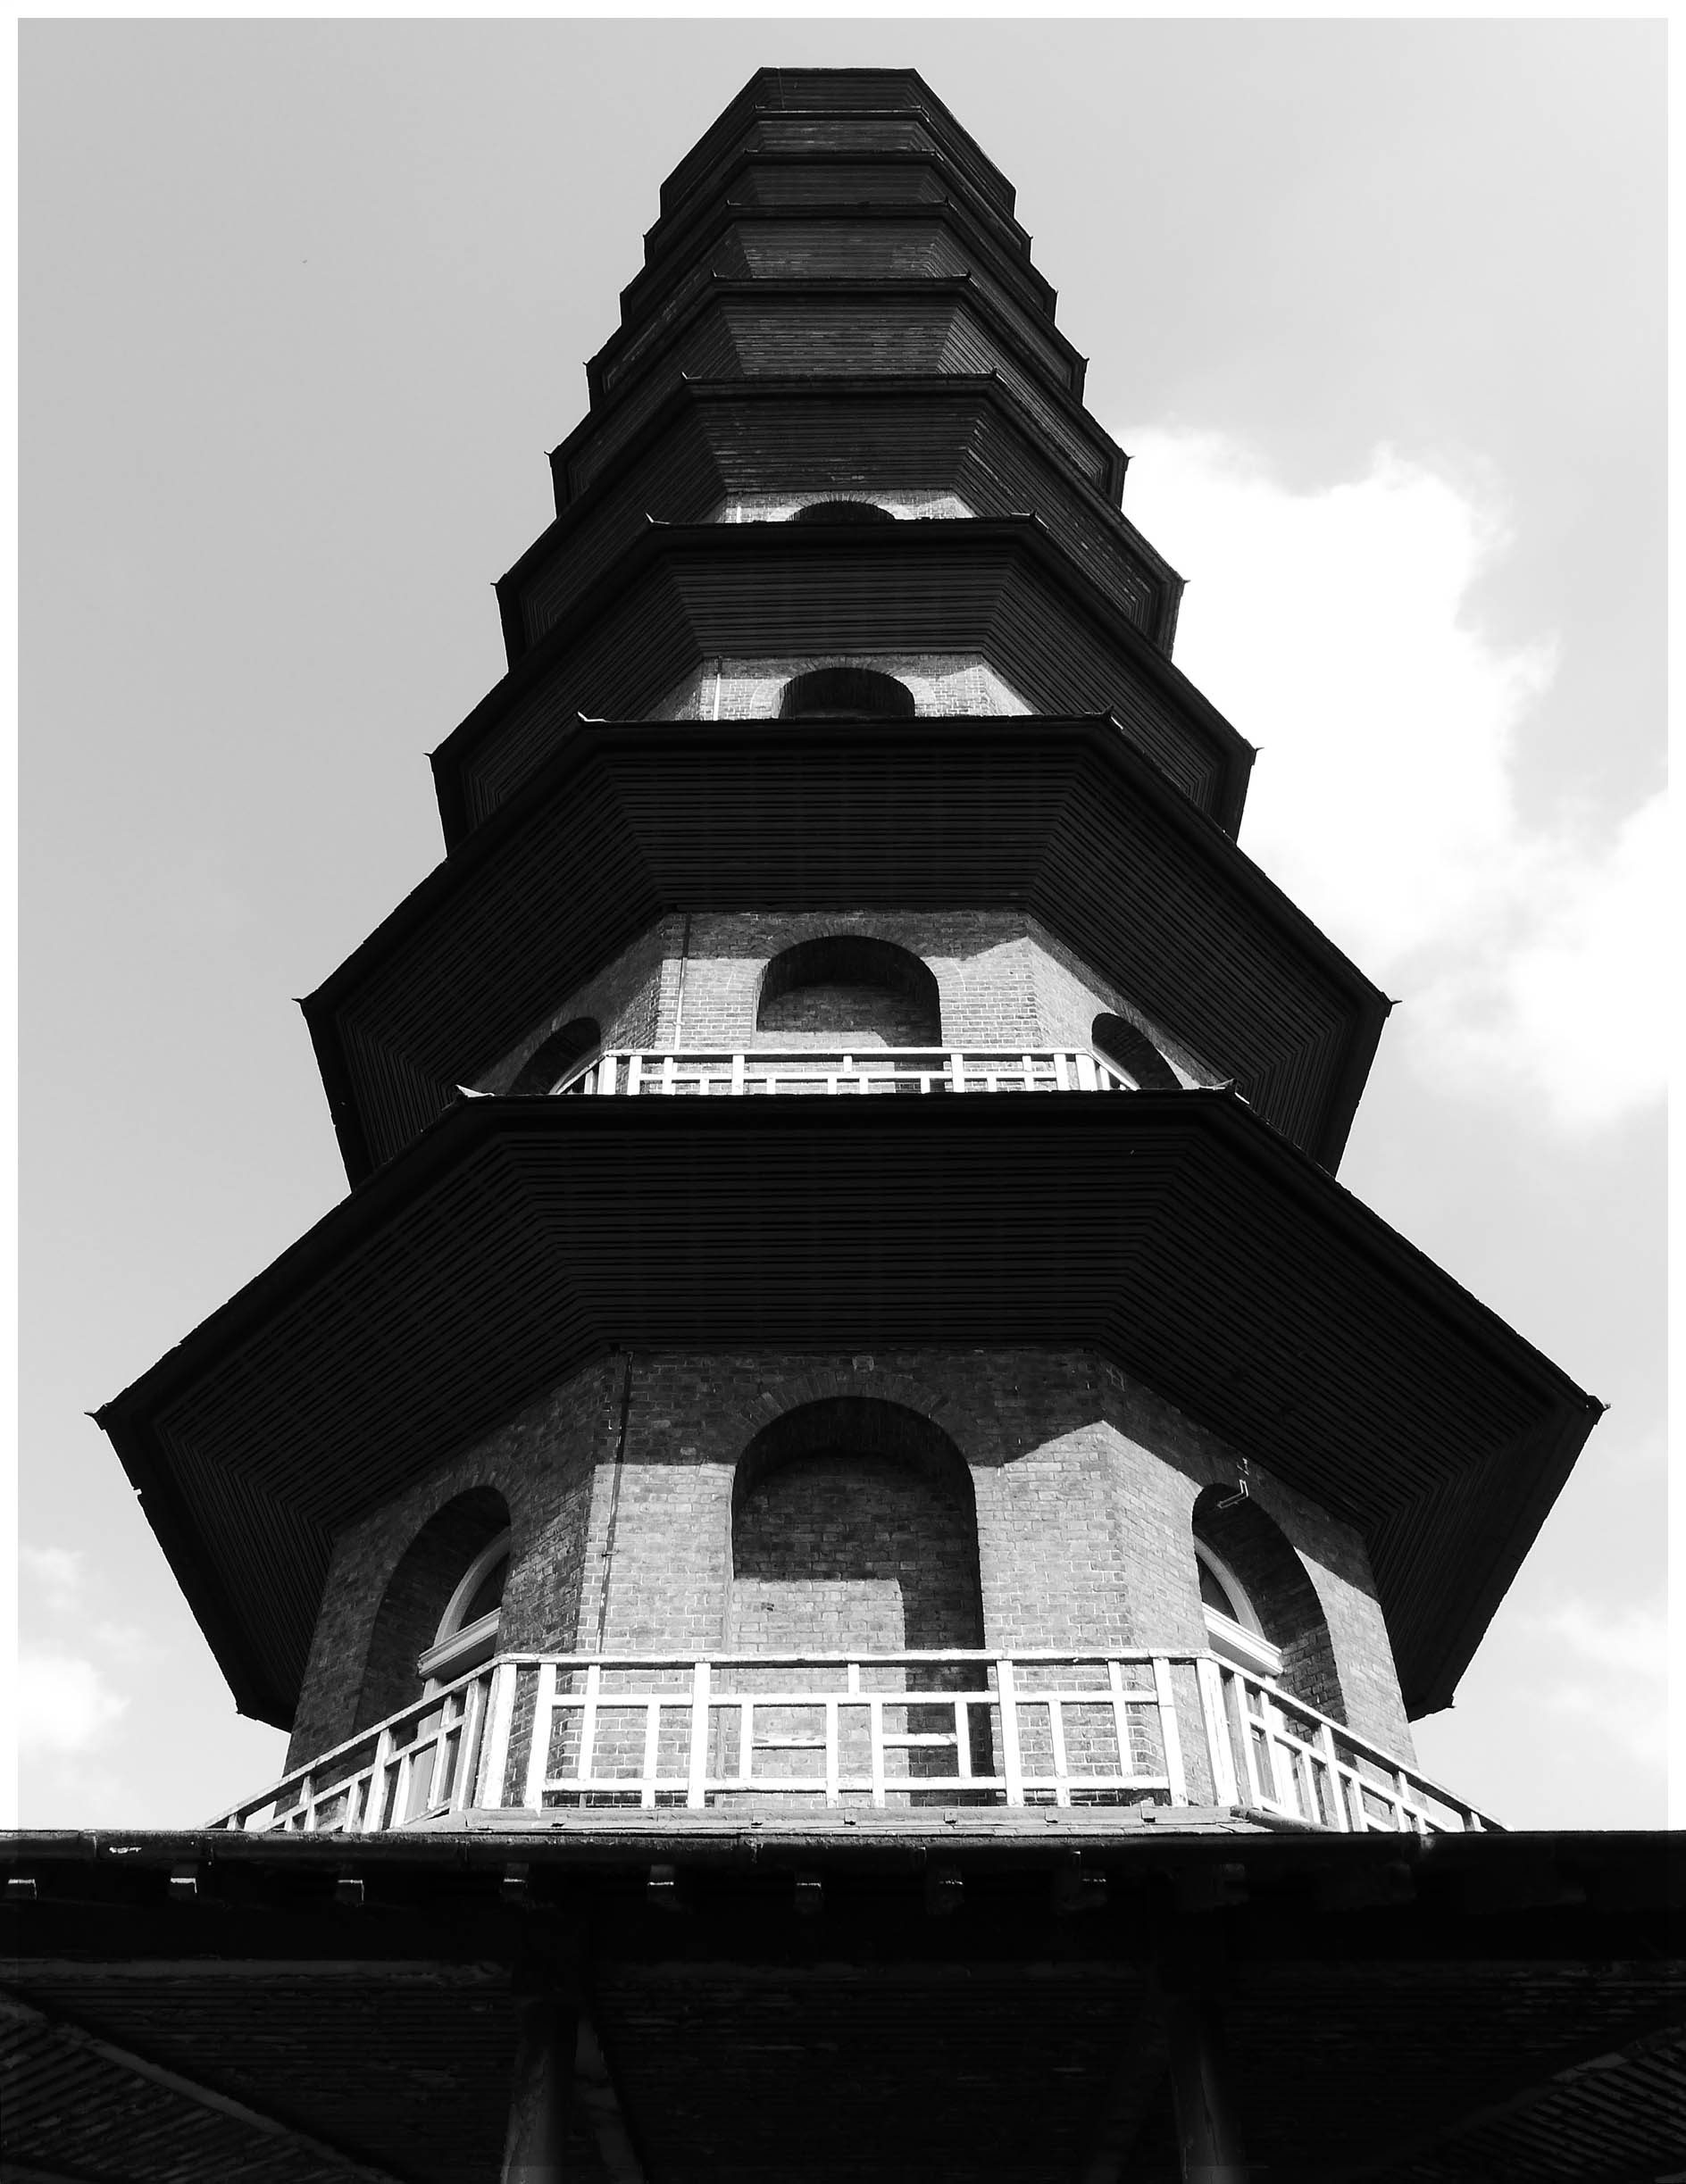 Black and white image of a pagoda seen from below